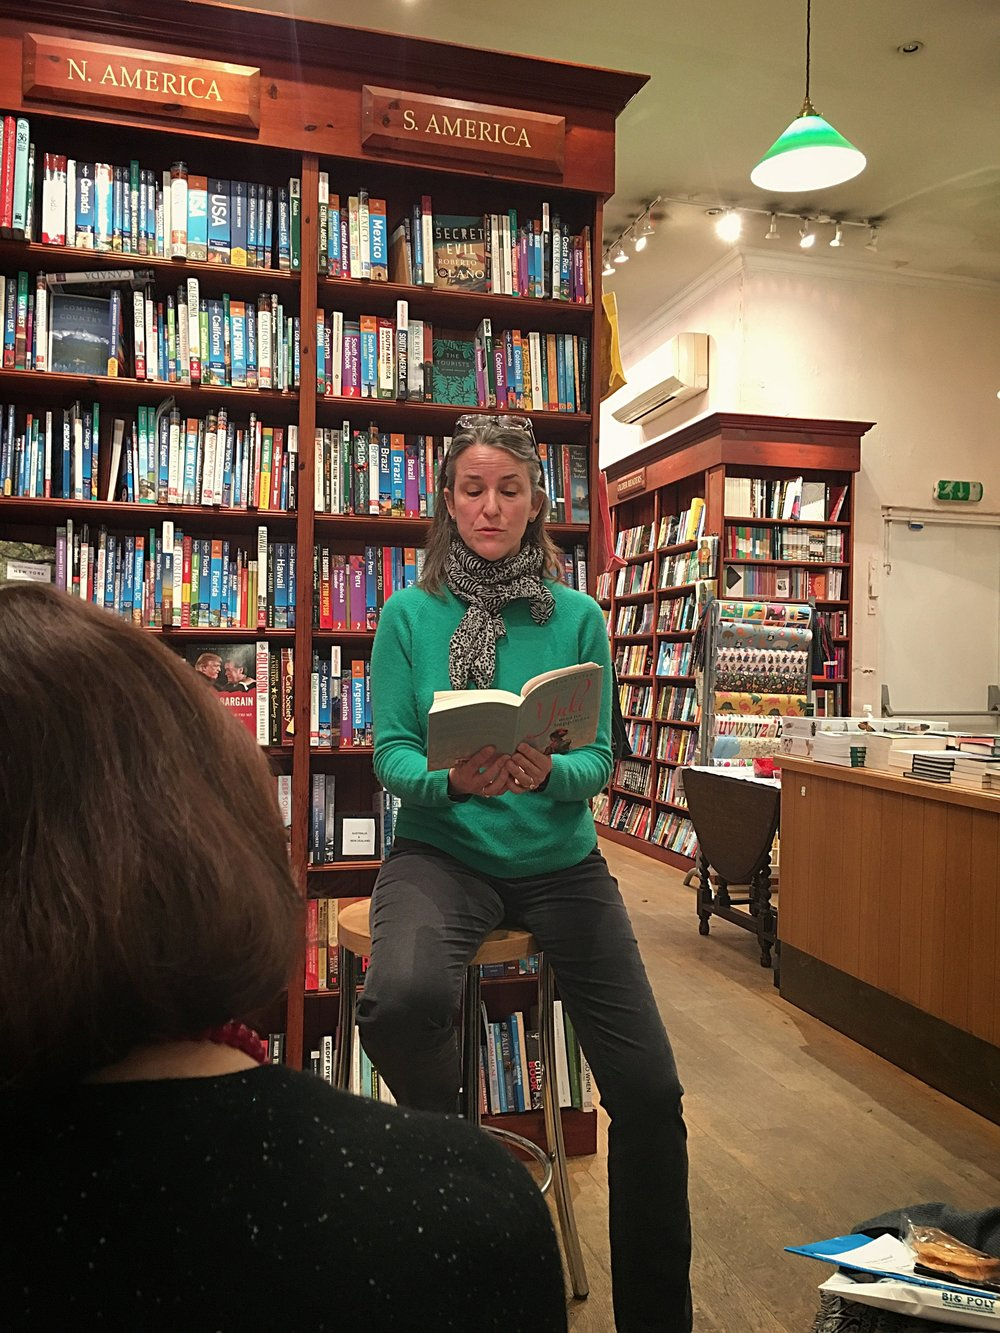 She read. She sang (beautifully). She told us how her latest novel came to be. It was wonderful.